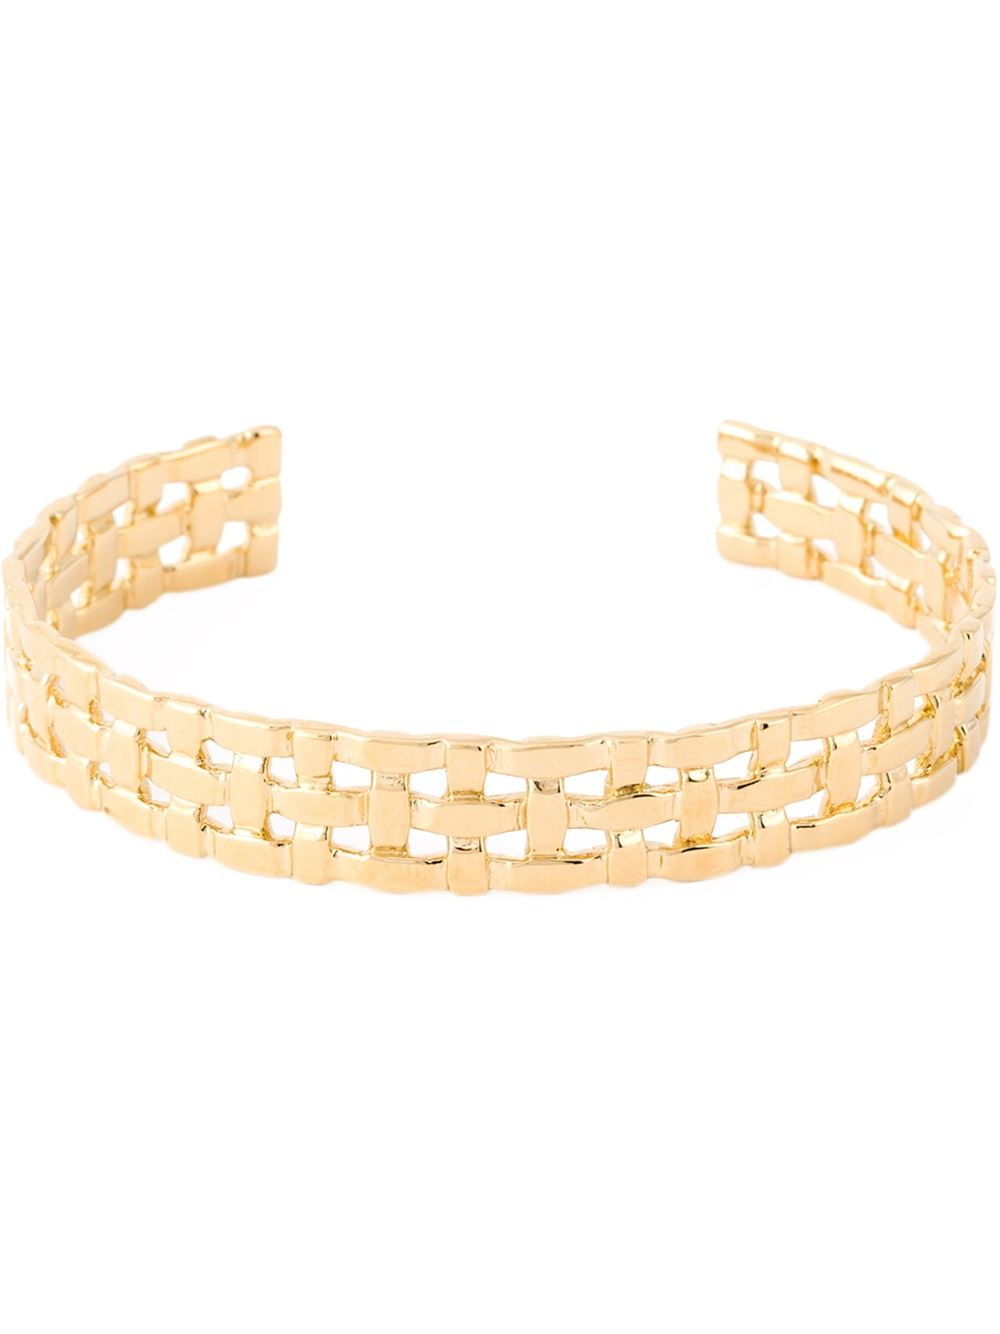 Aurelie Bidermann 18kt Gold Plated Marella Bracelet In. Kunzite Gemstone. Cone Pendant. Eternity Engagement Band. Stainless Steel Jewelry. Mini Stud Earrings. 14kt Chains. Storing Beads. Military Bands